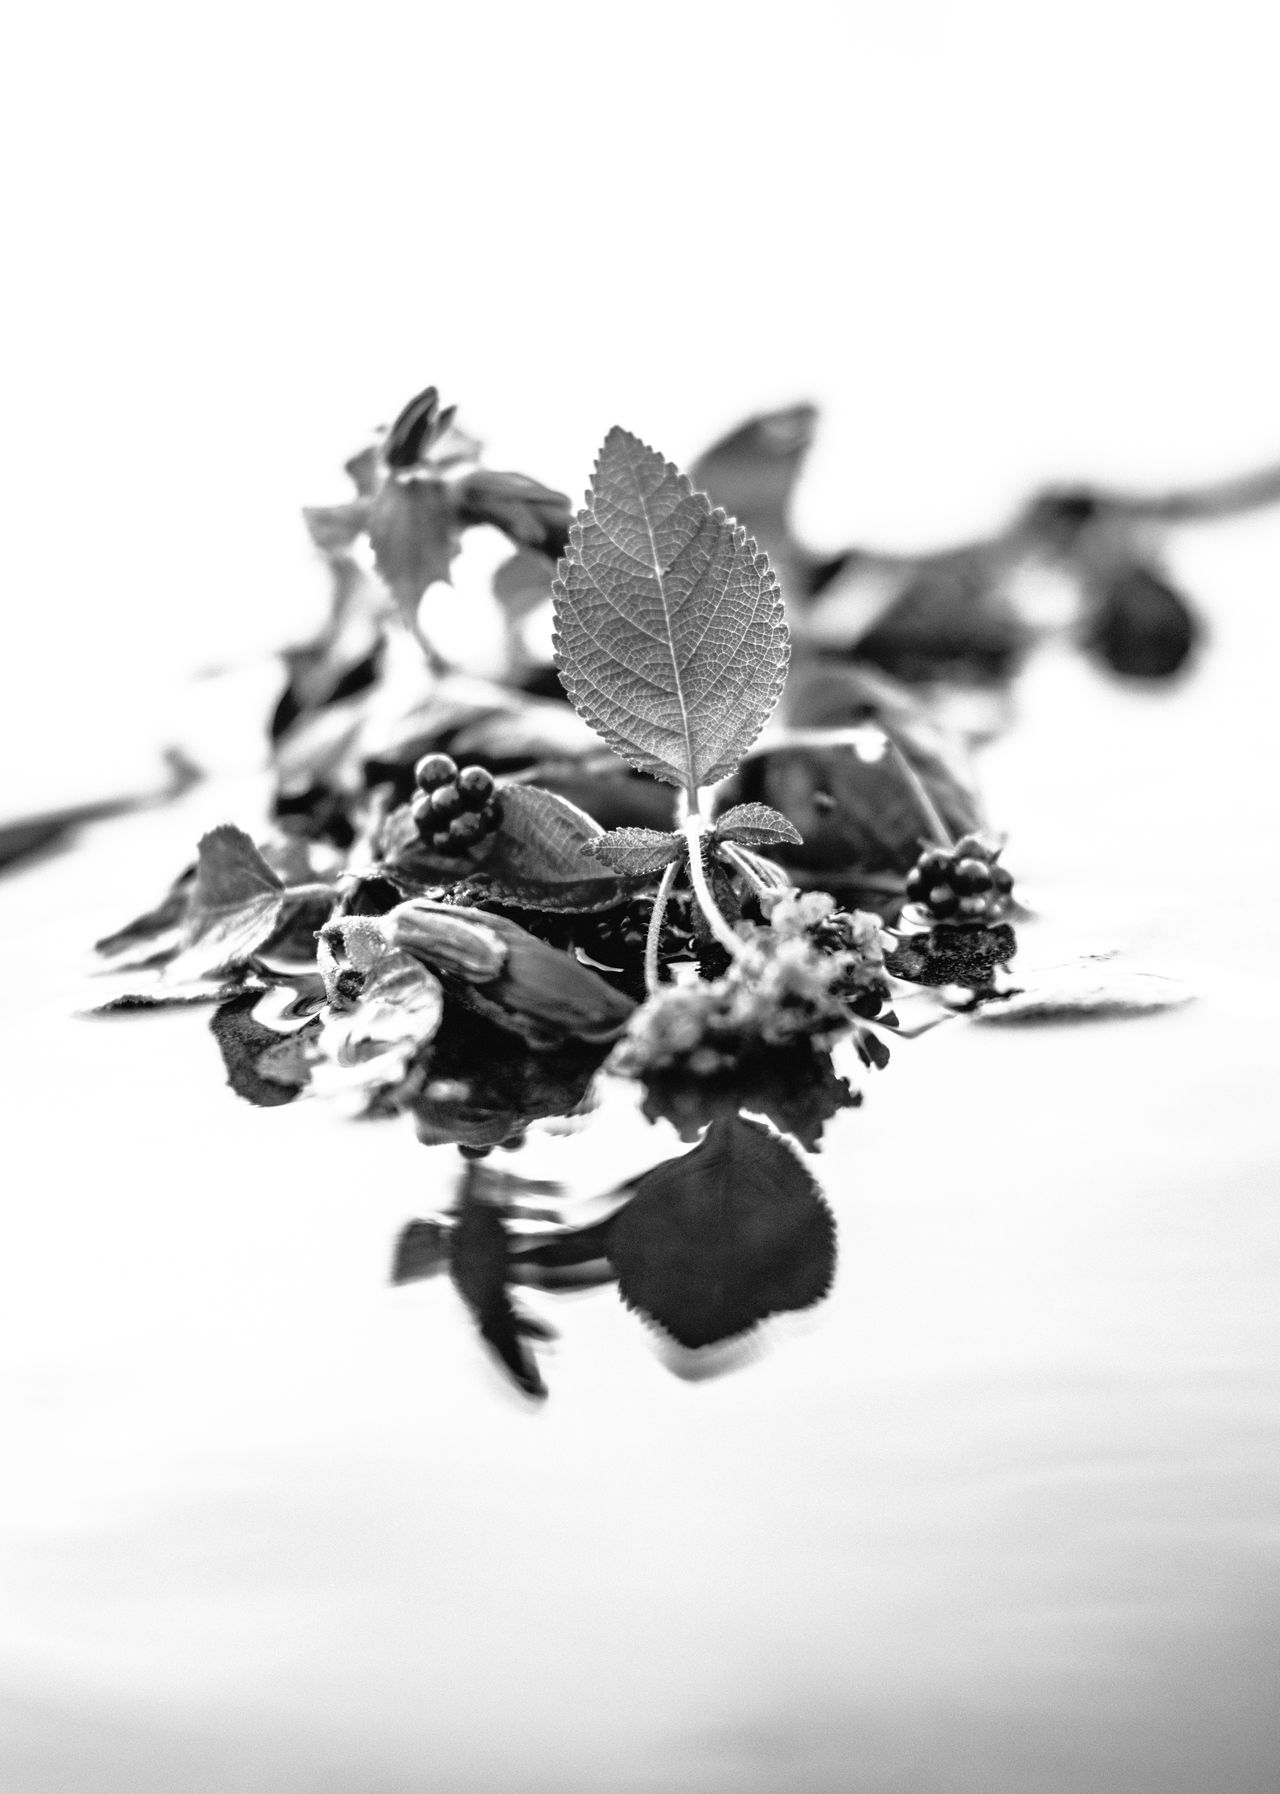 Abstract Photography Close-up Conceptual Photography  Day Fine Art Photography Flowers Food Food And Drink Freshness Leaf Minimal Nature No People Outdoors Scenics Selective Focus Studio Shot Water Water Reflections Water_collection White Background